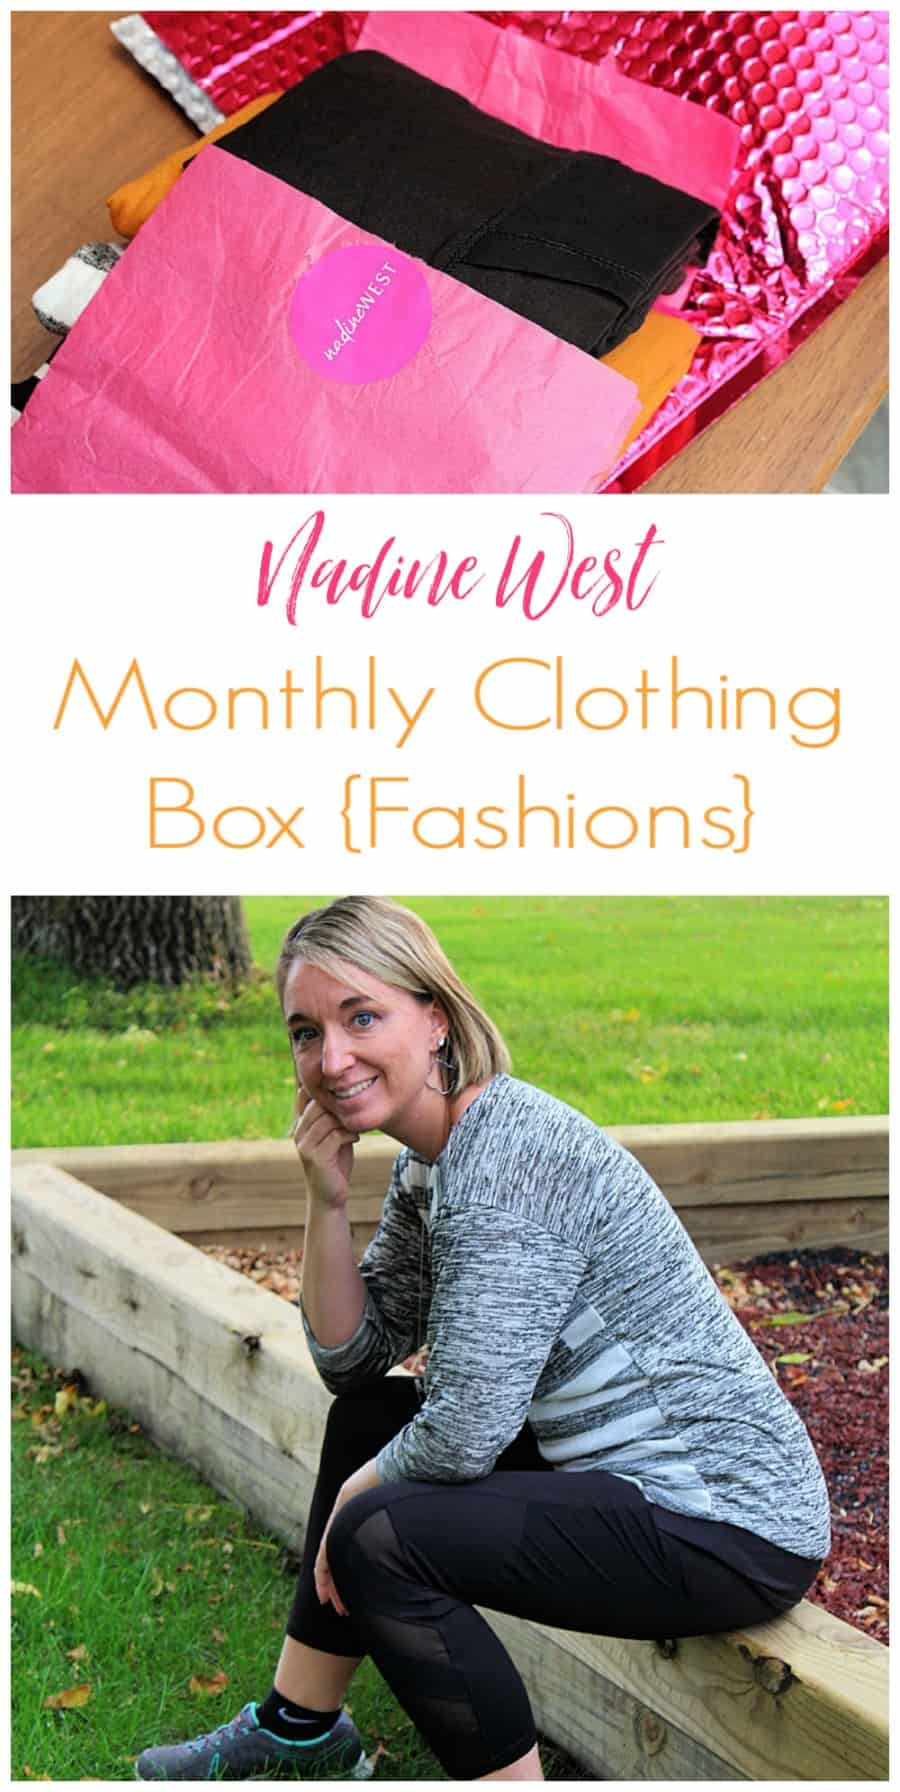 Nadine West Monthly Clothing Box {Fashions}